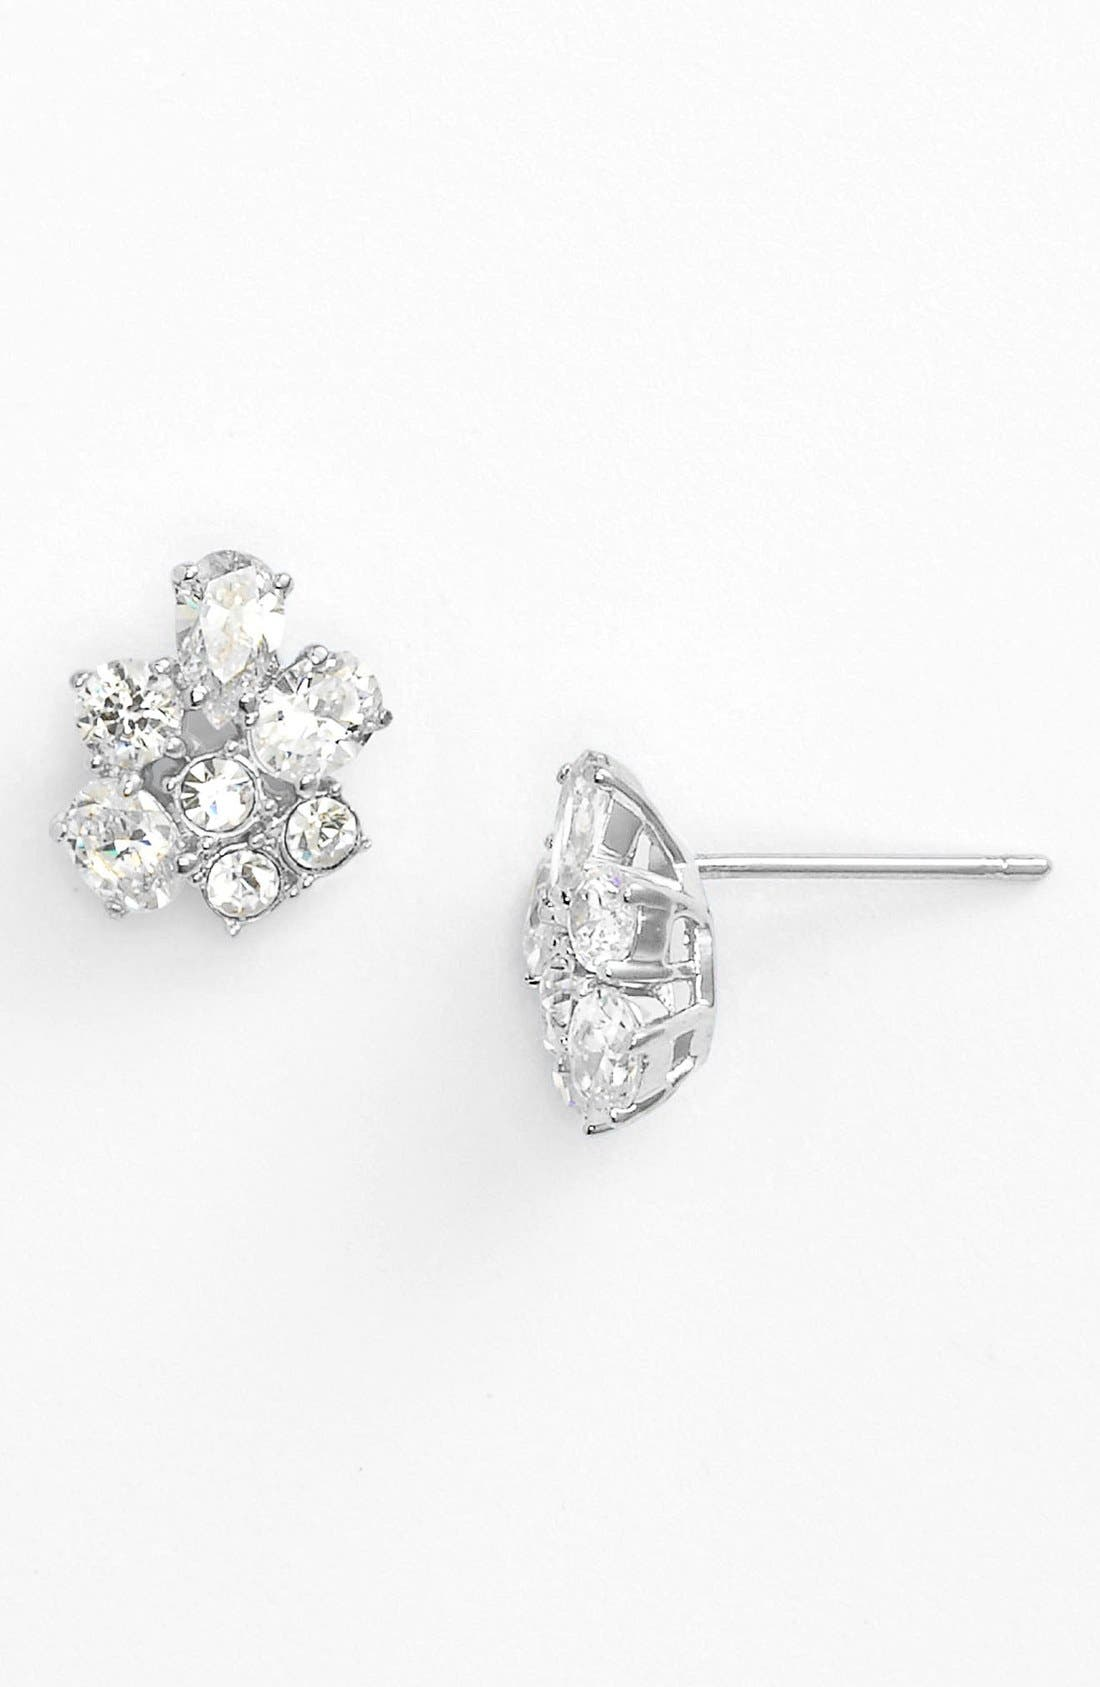 Main Image - Nadri Cubic Zirconia Cluster Stud Earrings (Nordstrom Exclusive)